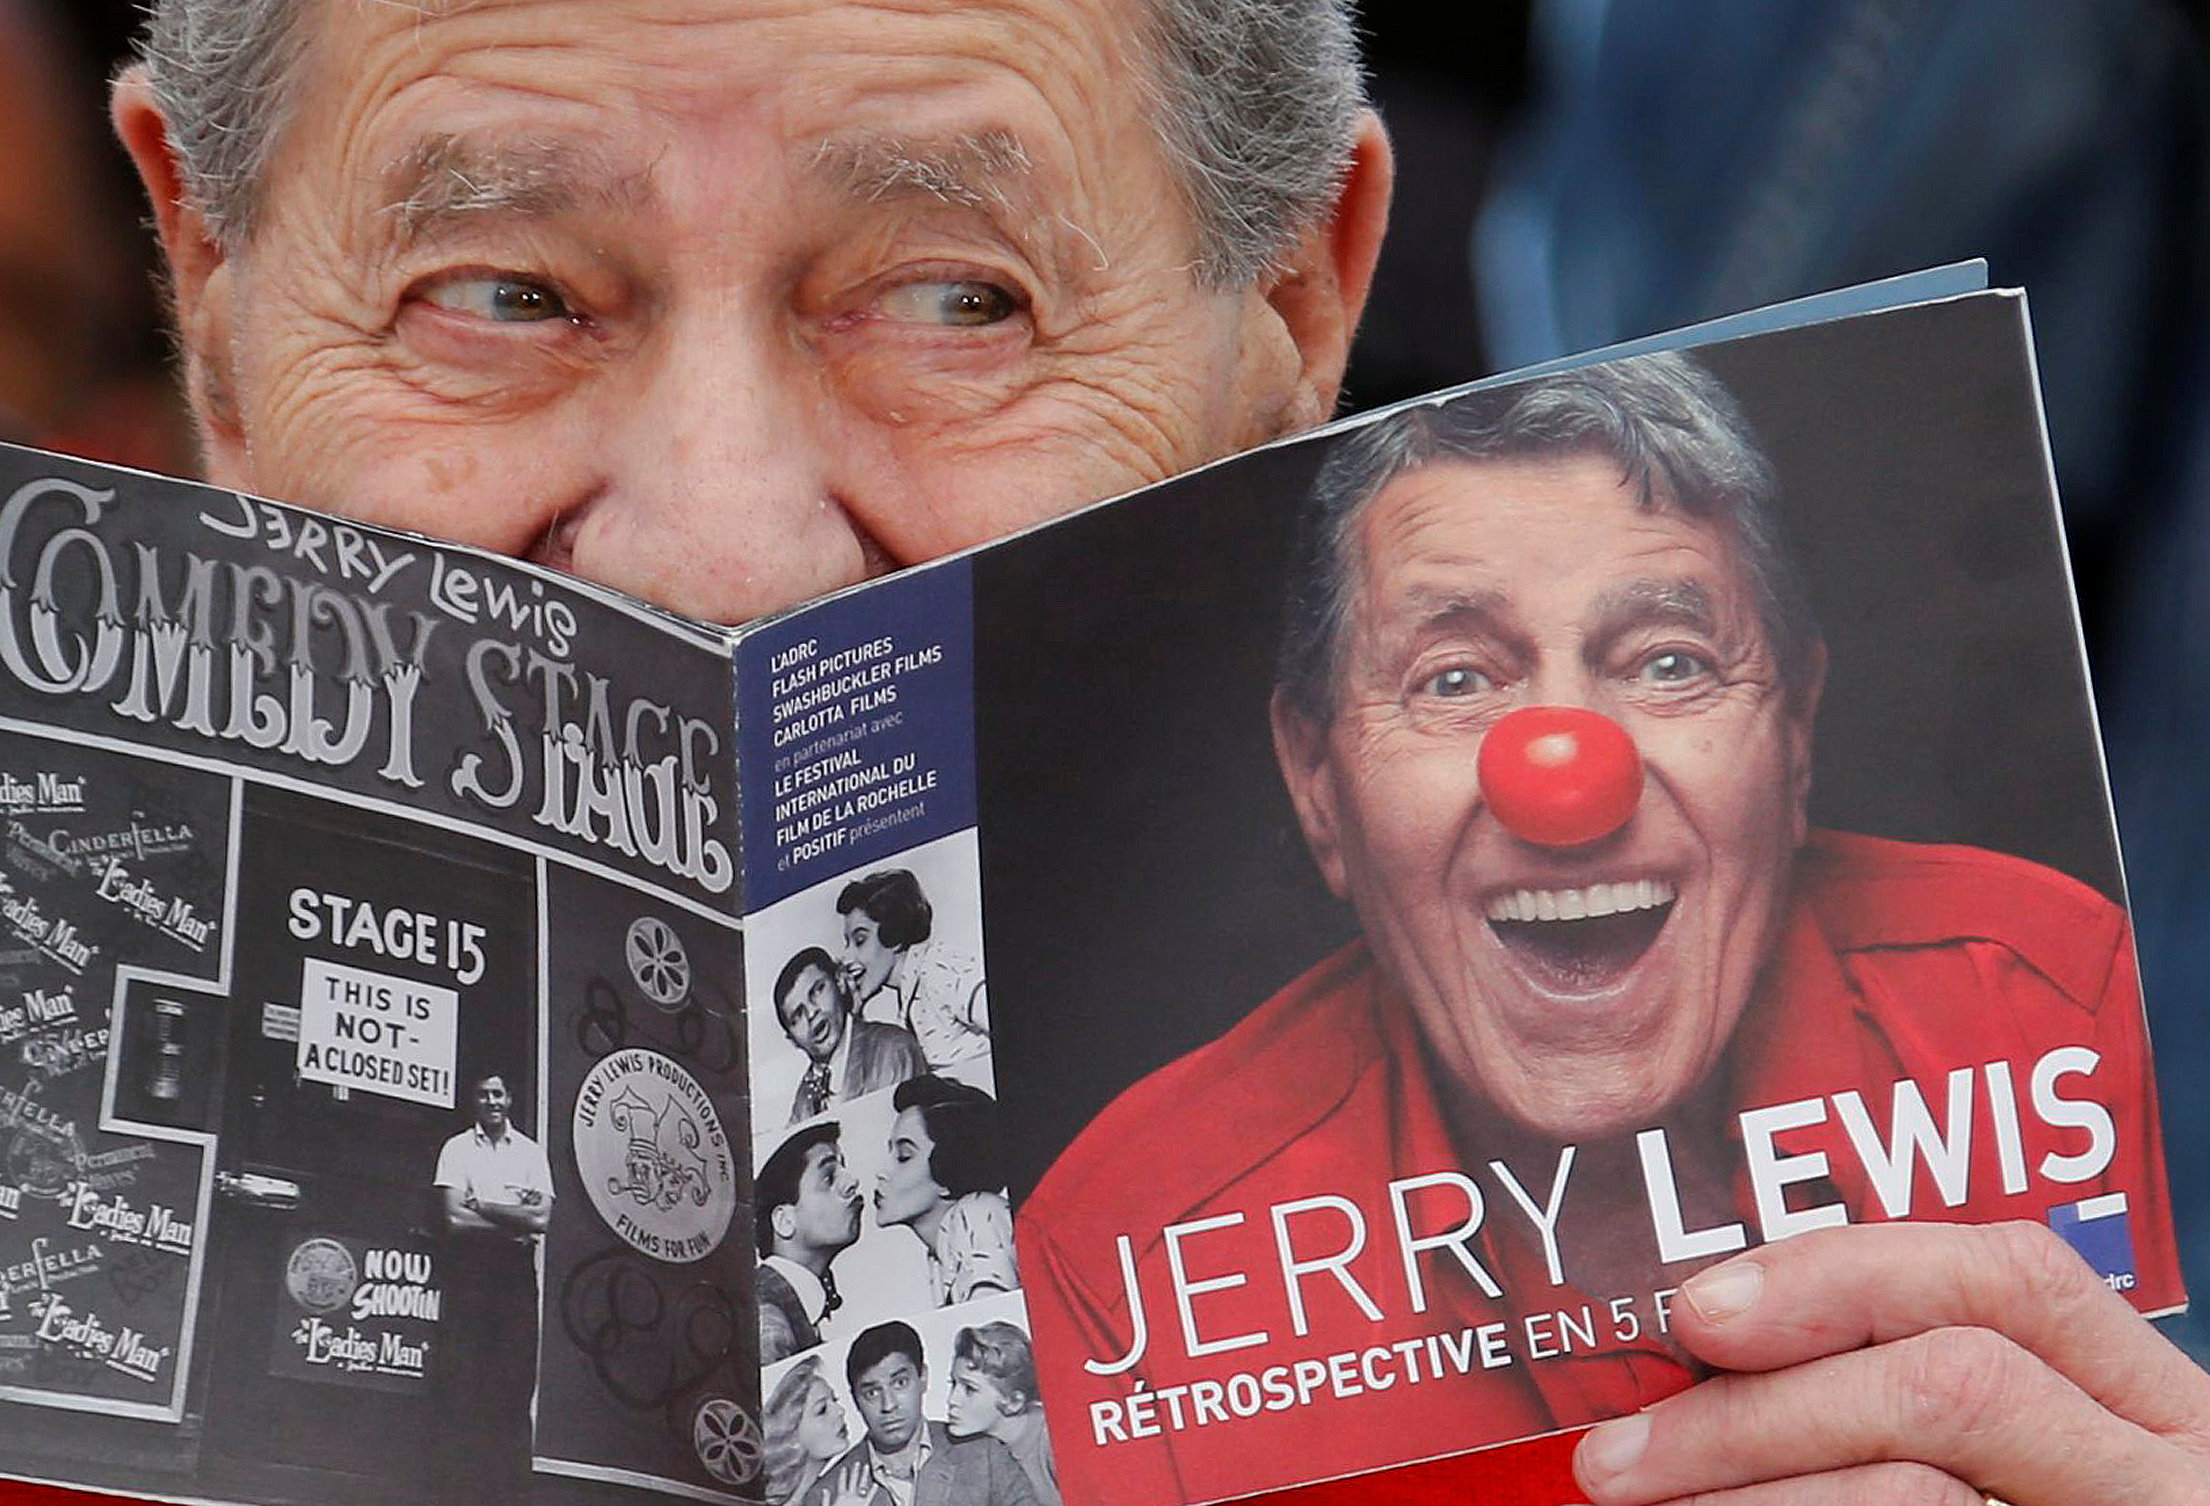 In Pictures: Comedy legend Jerry Lewis dies at 91